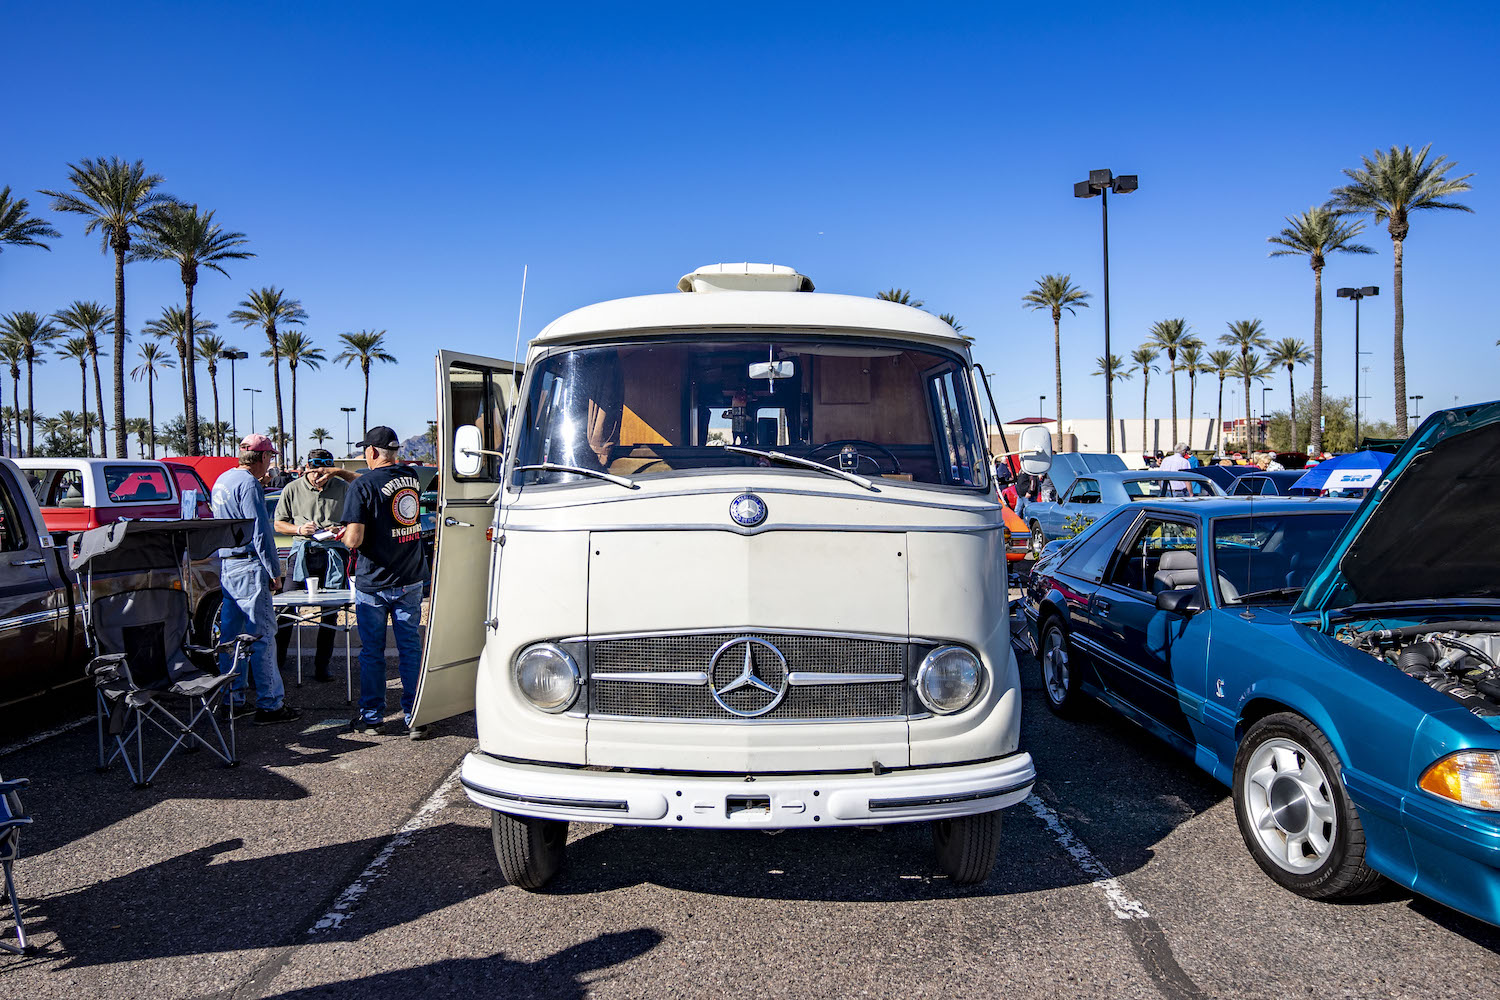 This 1962 Mercedes-Benz L 319 Westfalia camper conversion is one of the most charming vehicles in Scottsdale